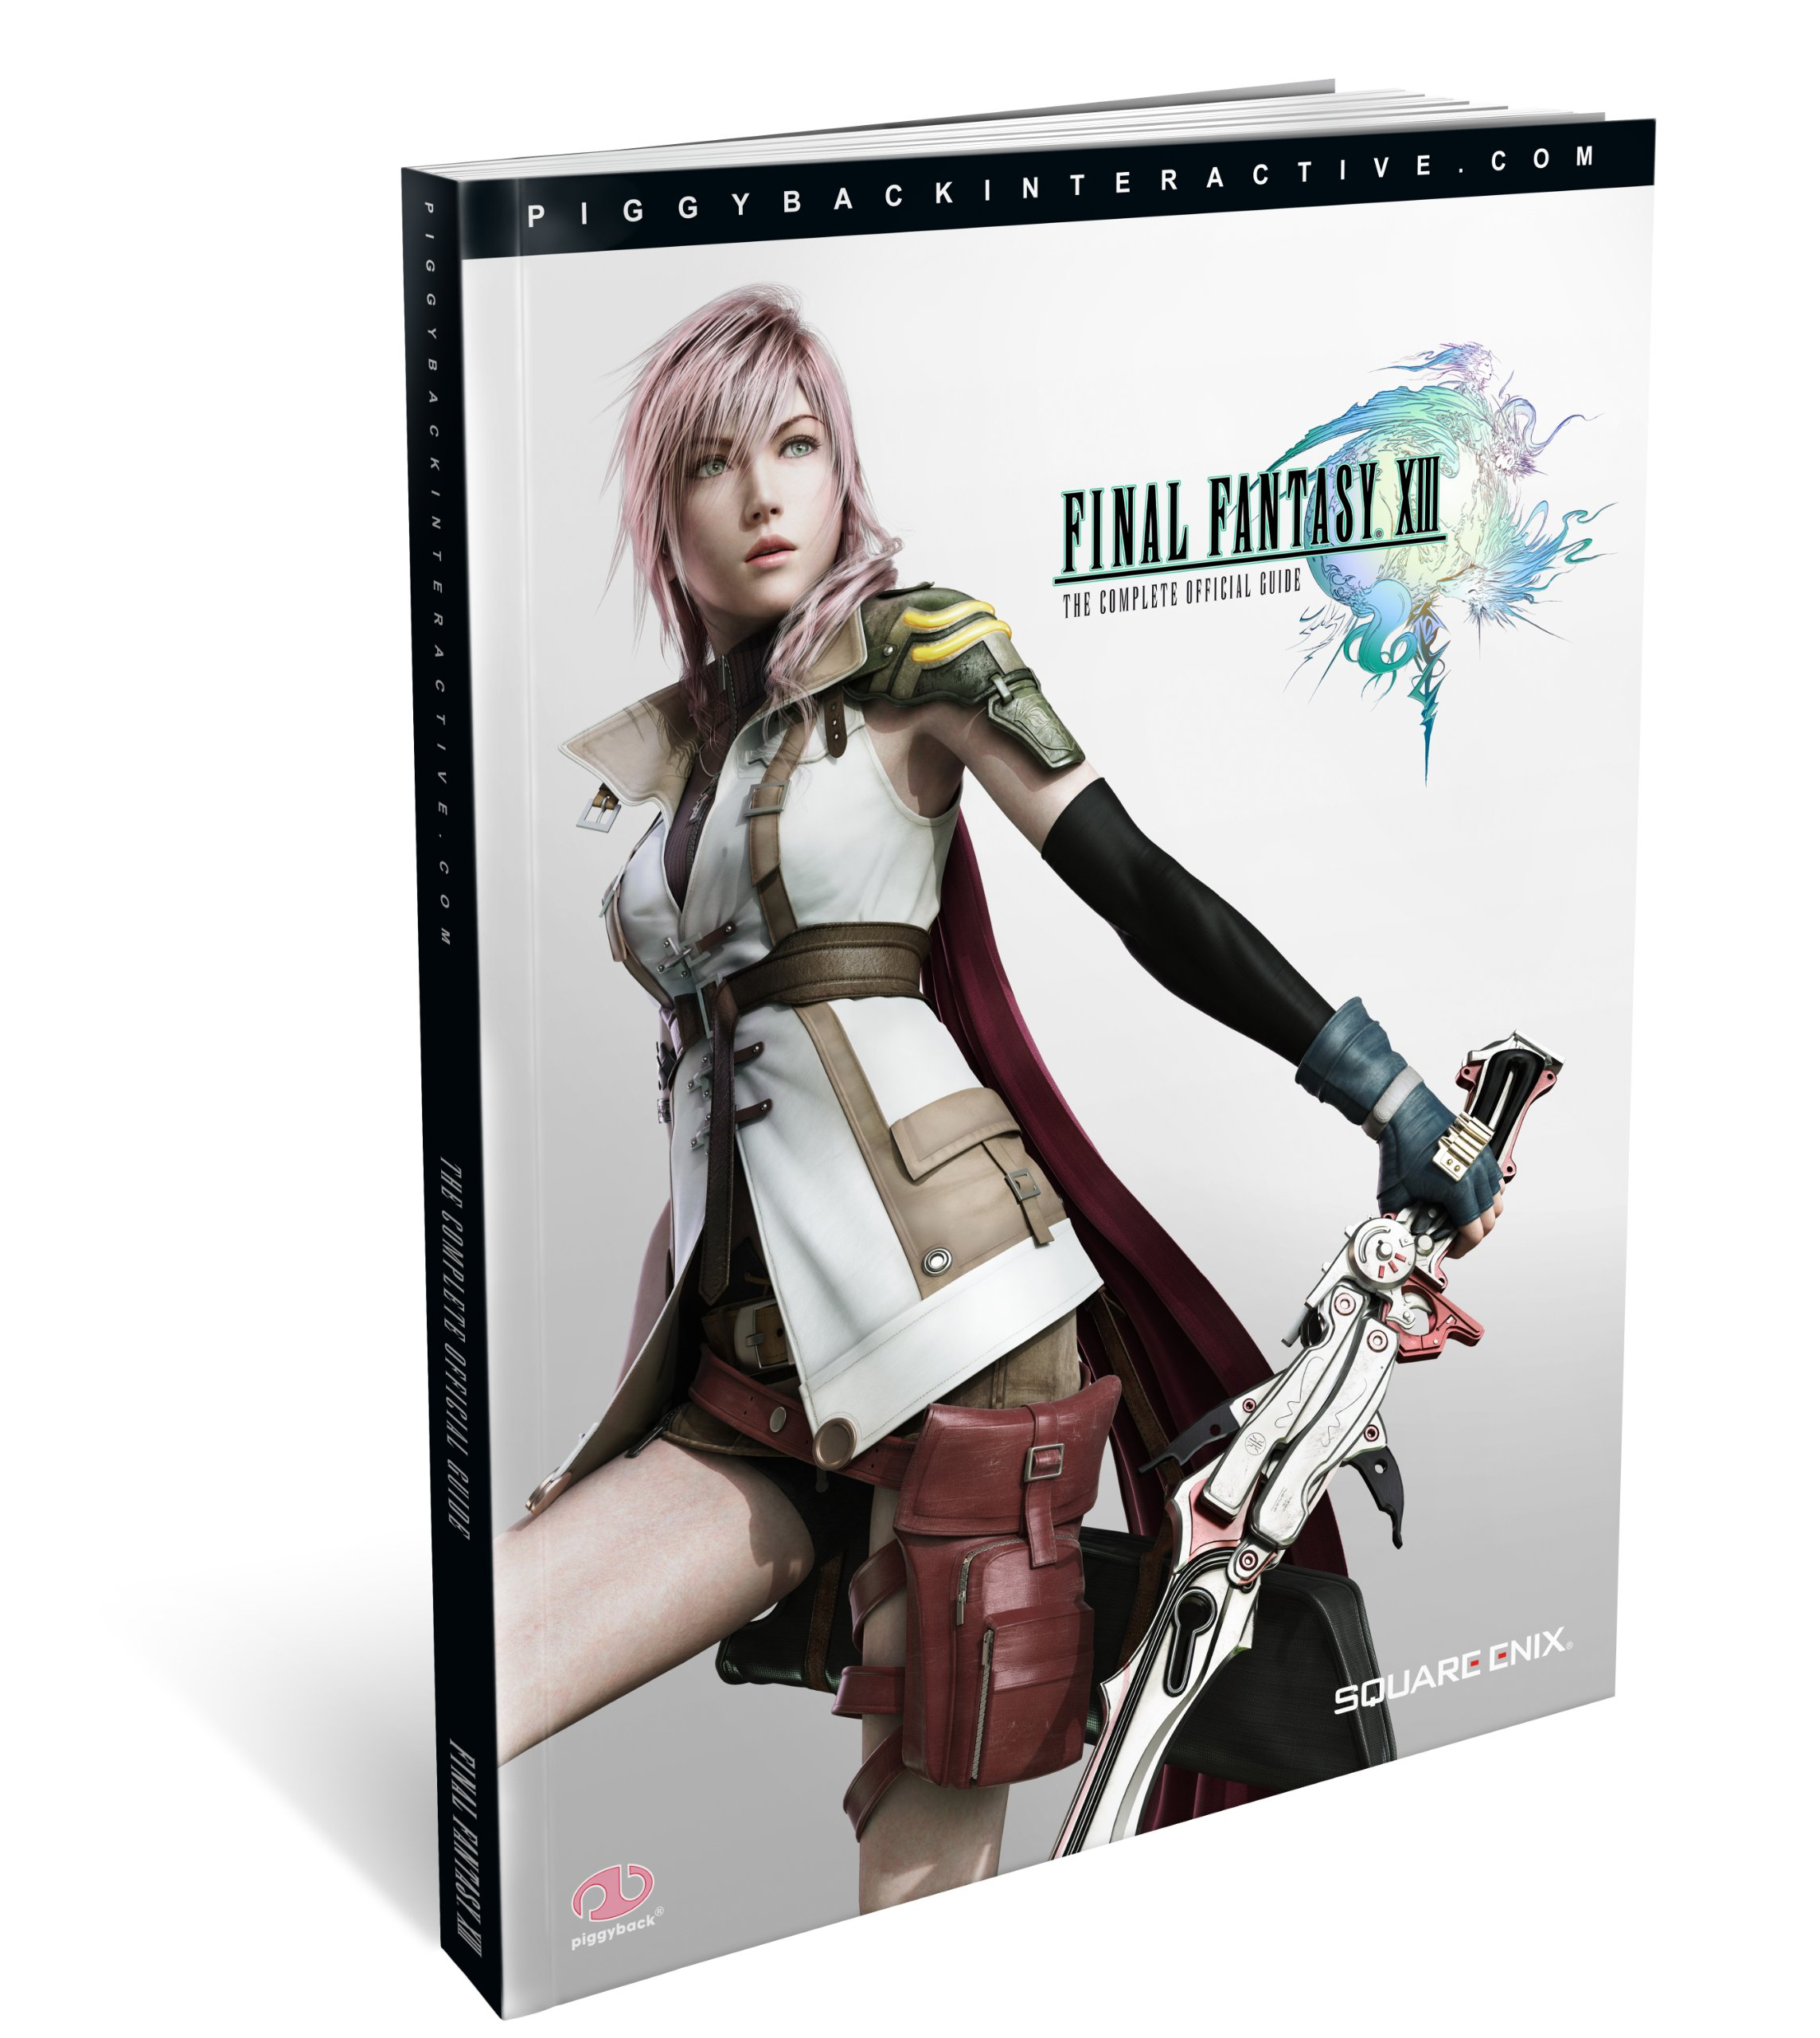 Final Fantasy Xii Guide Book